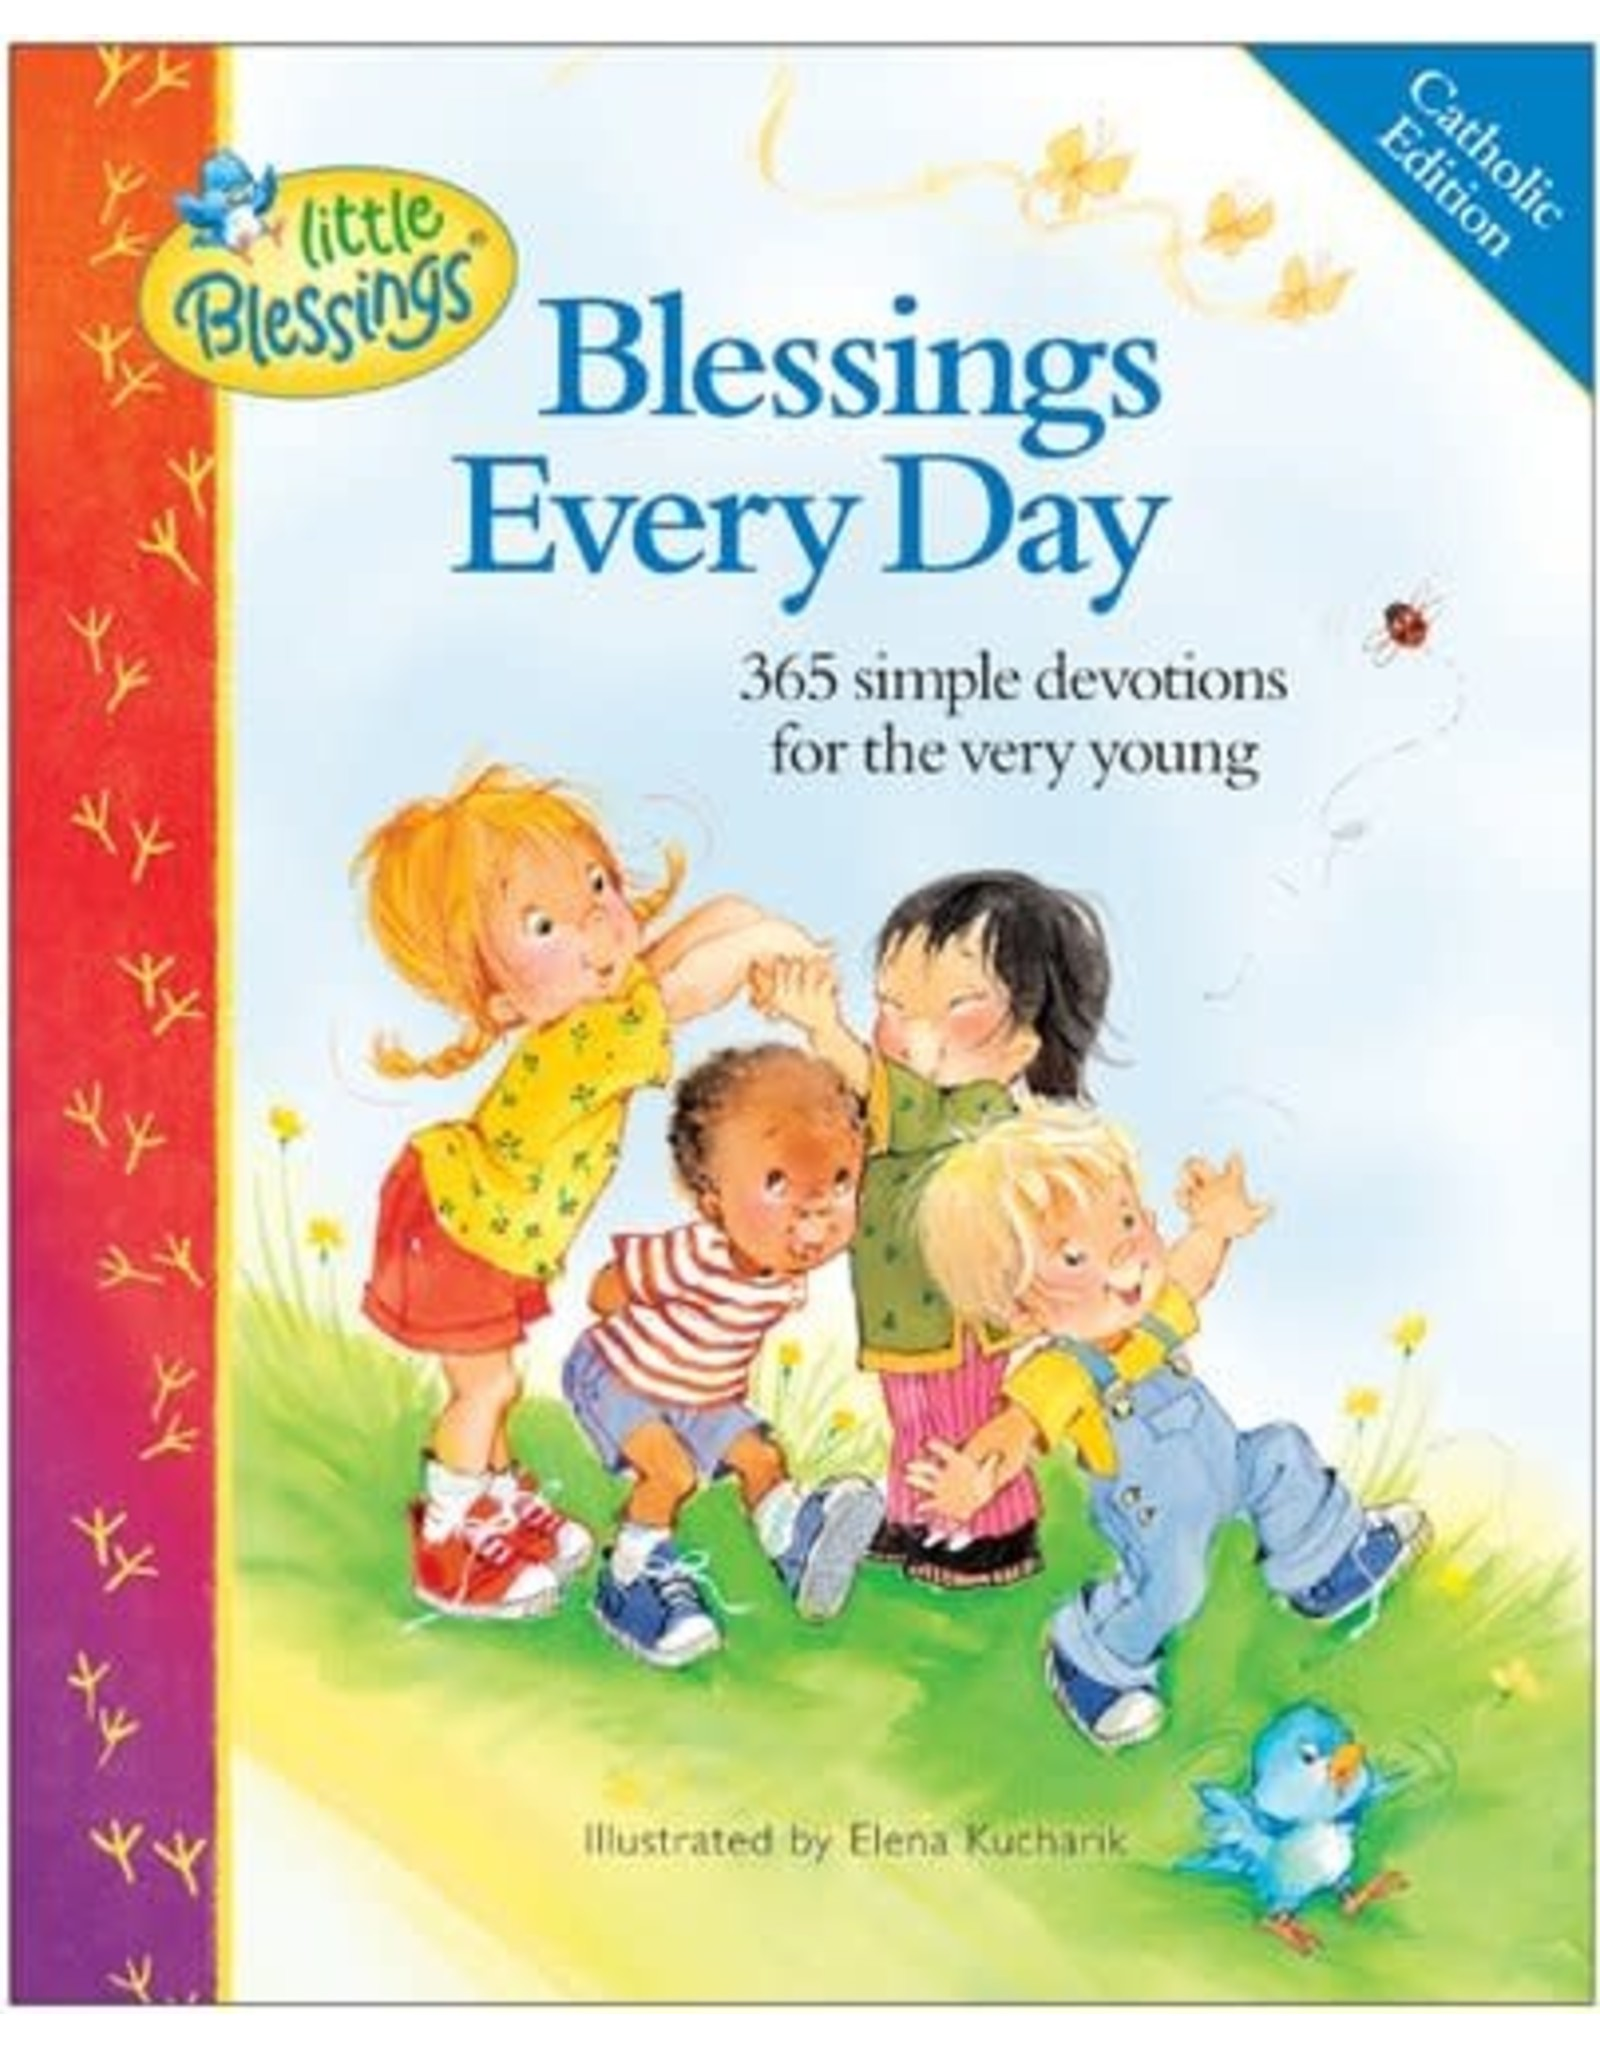 Blessings Every Day - 365 Devotions for the Very Young